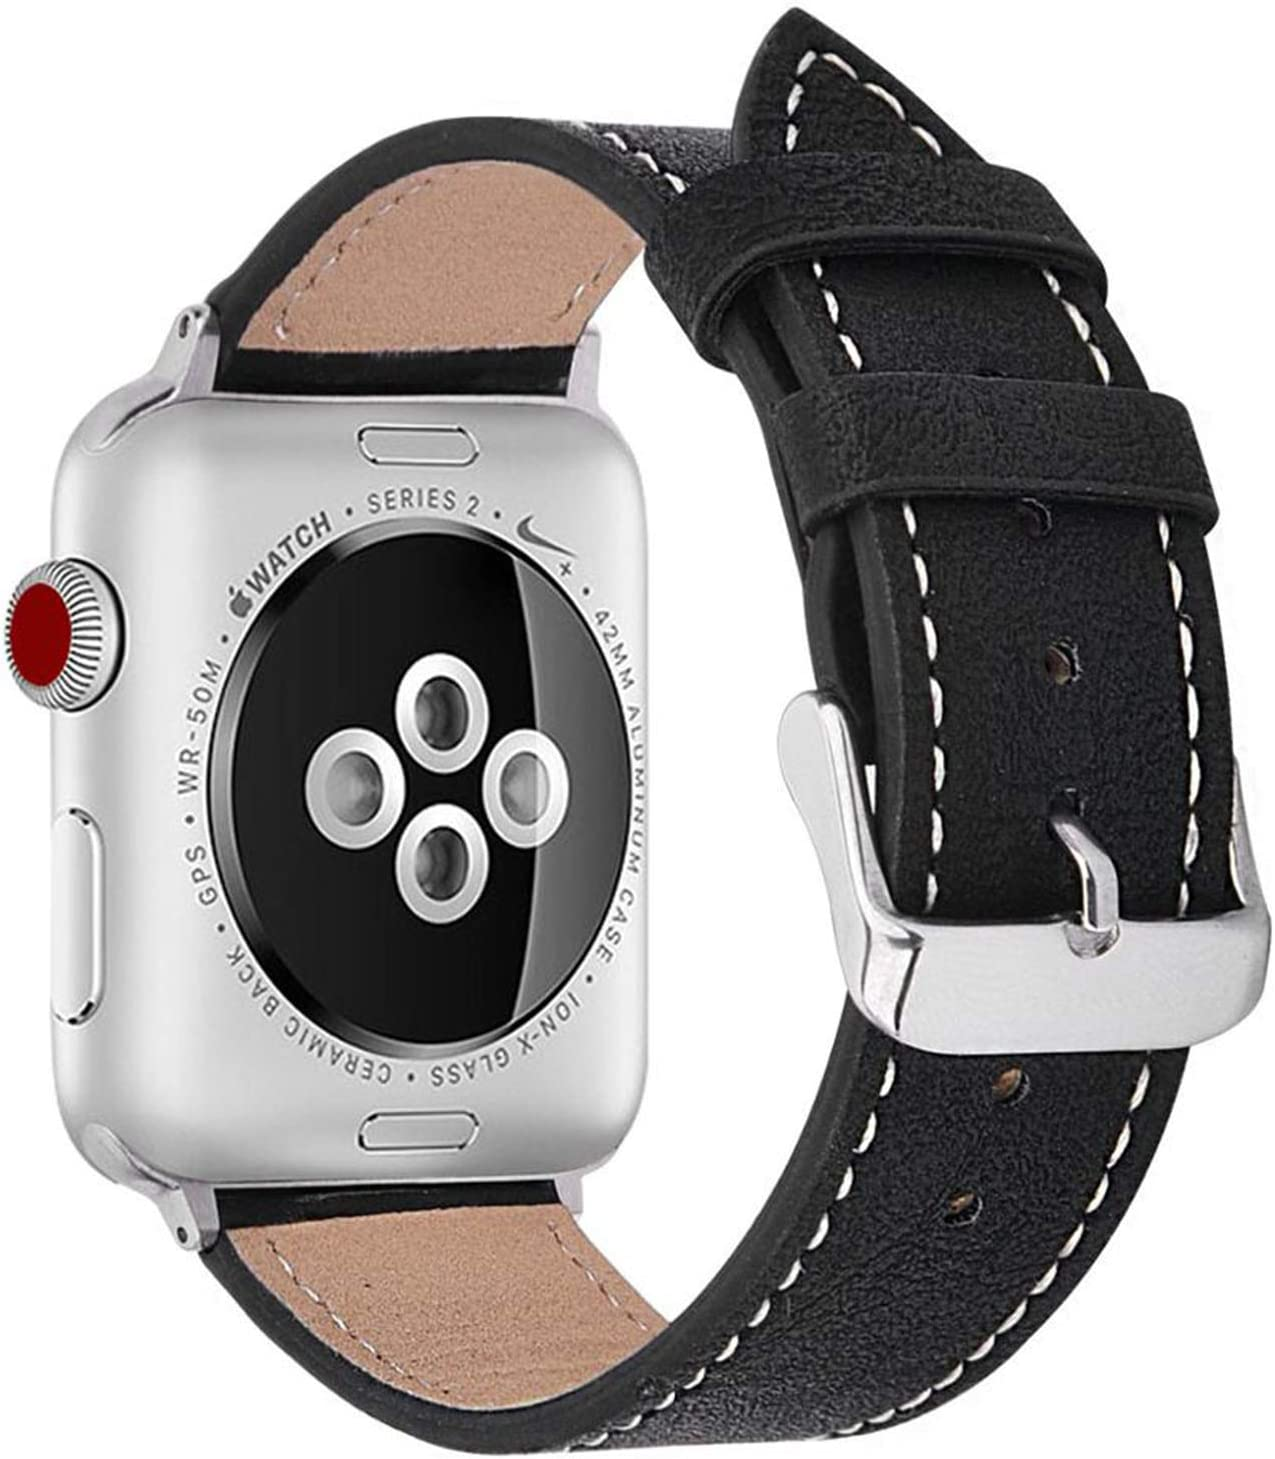 Compatible with Apple Watch Band 38mm 40mm, Genuine Leather Band Replacement Strap Compatible with Apple Watch Series 6/5/4/3/2/1/SE (Black Band/Silver Adapter, 38mm /40mm)